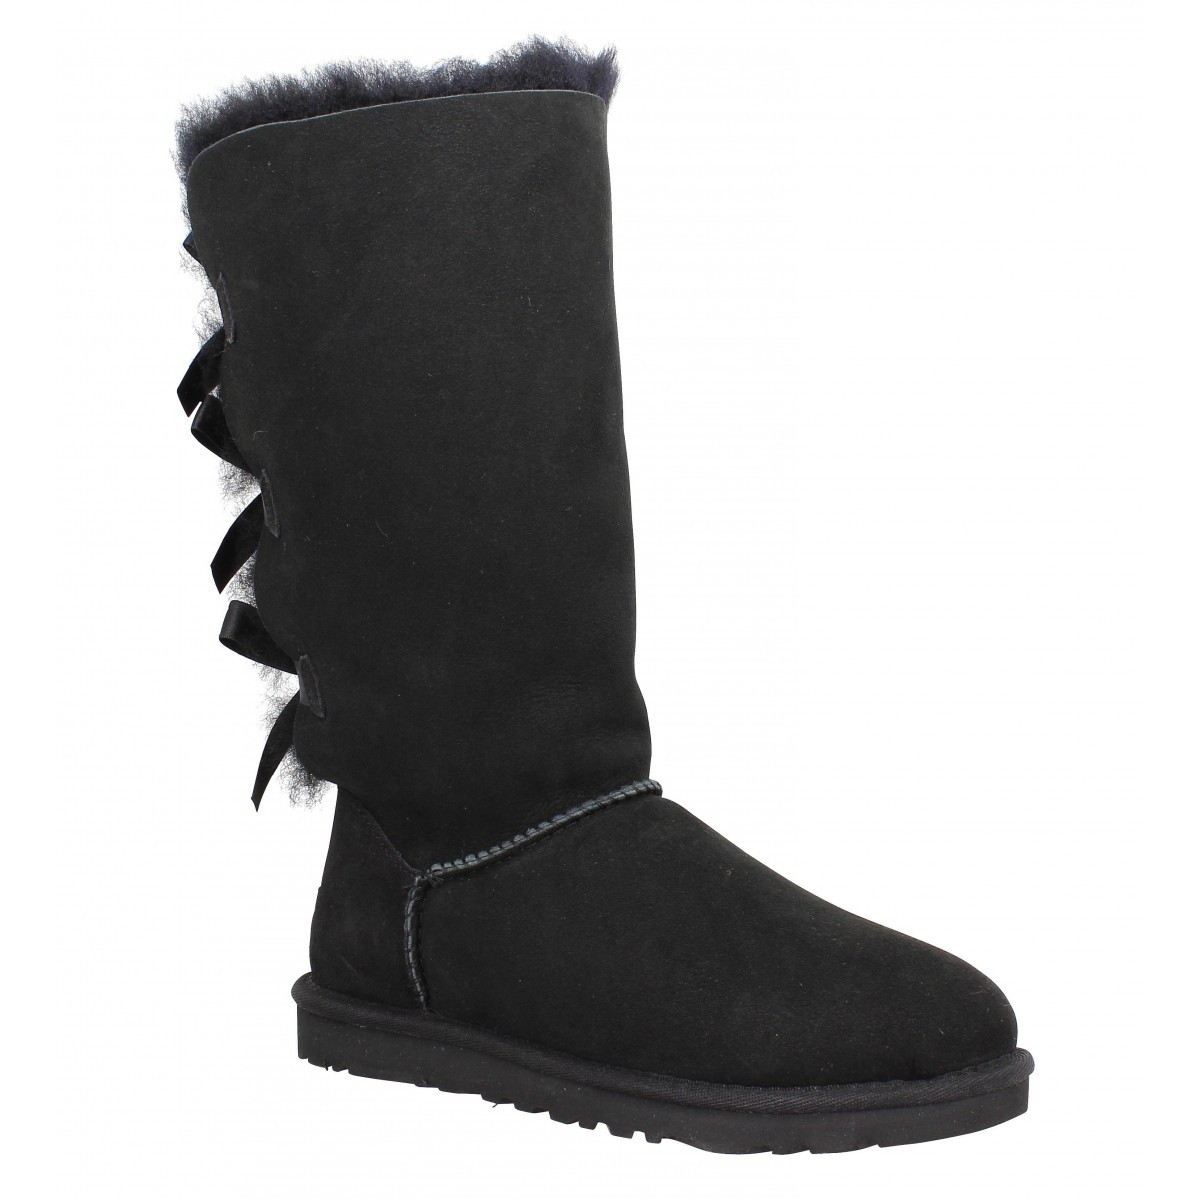 Bottes UGG AUSTRALIA Bailey Bow Tall velours Femme Black